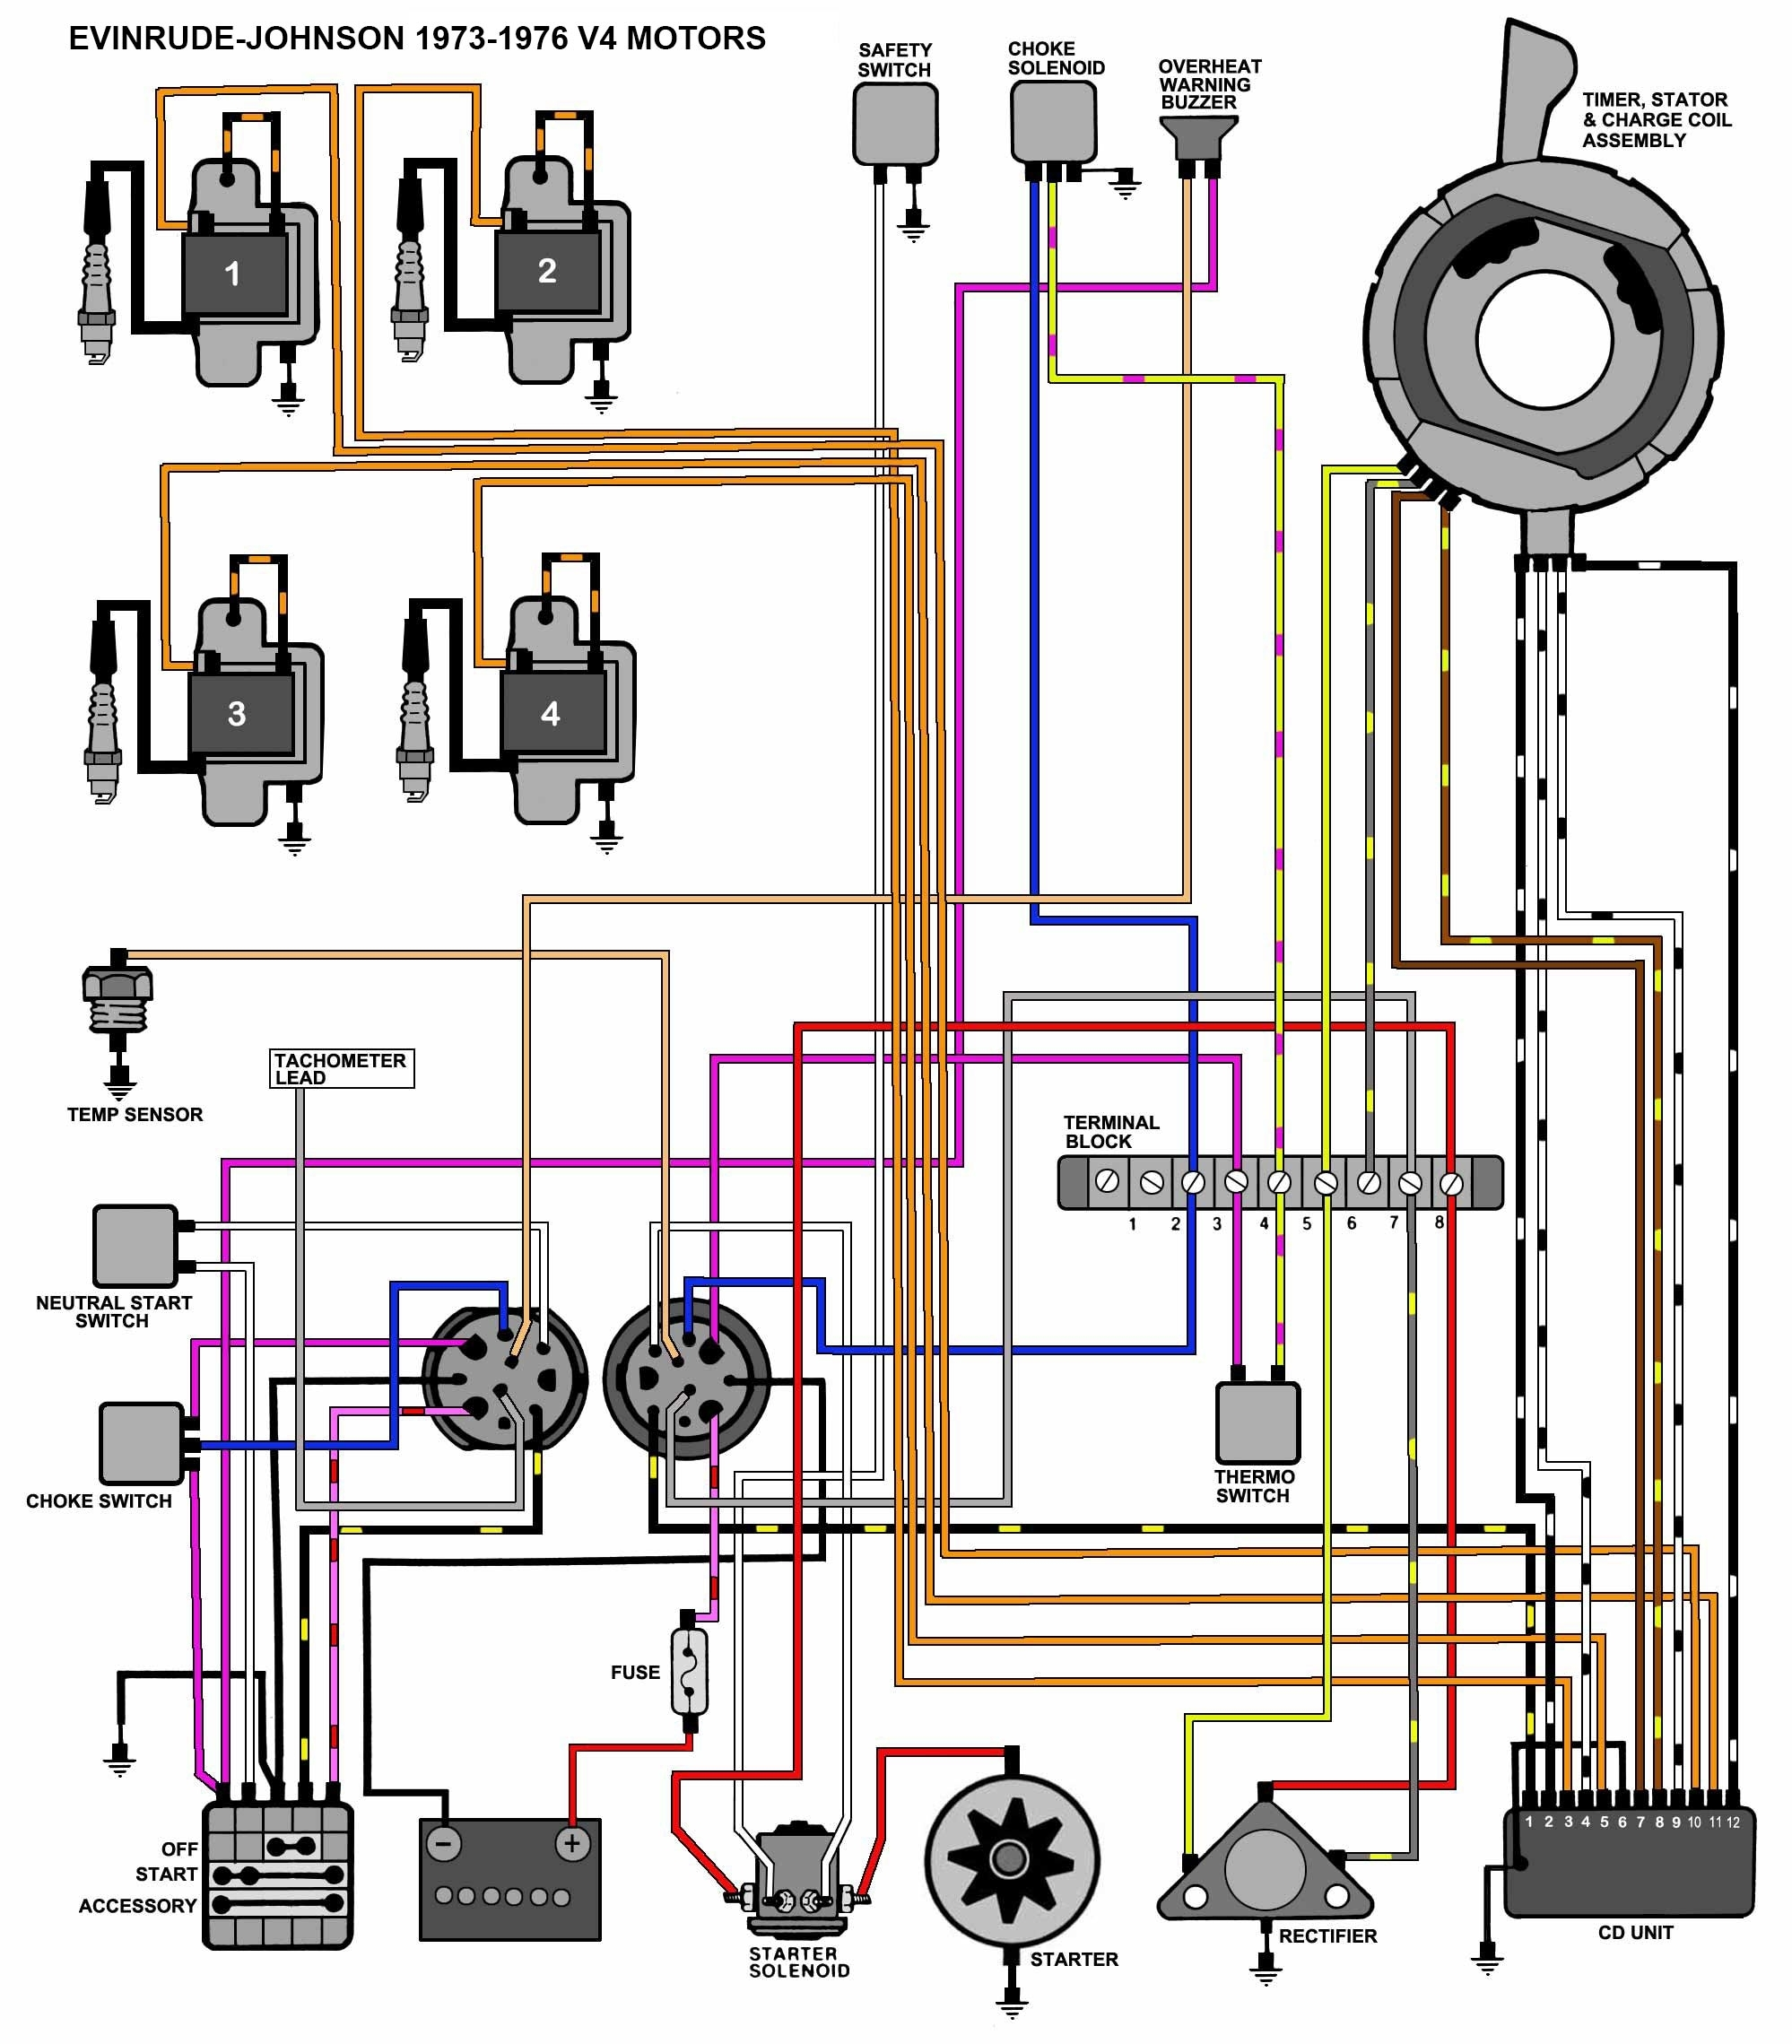 evinrude ignition switch wiring diagram with 1969 omc 55 wiring throughout 70 hp evinrude wiring diagram?resize\\\=665%2C759\\\&ssl\\\=1 moomba wiring diagram cobalt wiring diagram \u2022 wiring diagram  at honlapkeszites.co